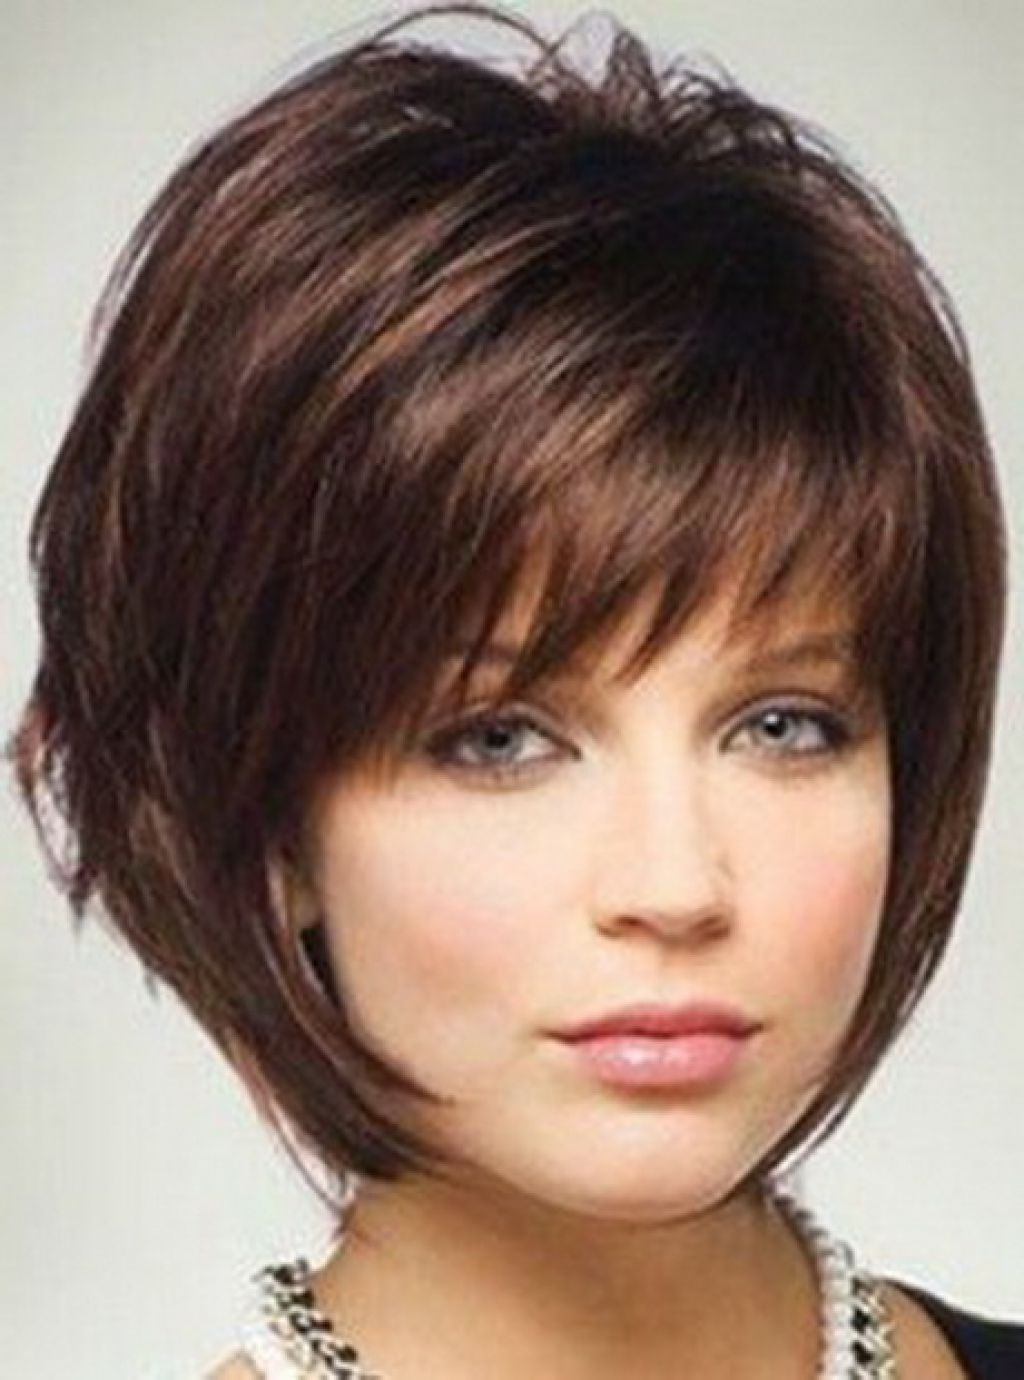 Widely Used Short Shaggy Choppy Hairstyles Regarding Short Choppy Hairstyles With Bangs – Hairstyle For Women & Man (View 15 of 15)